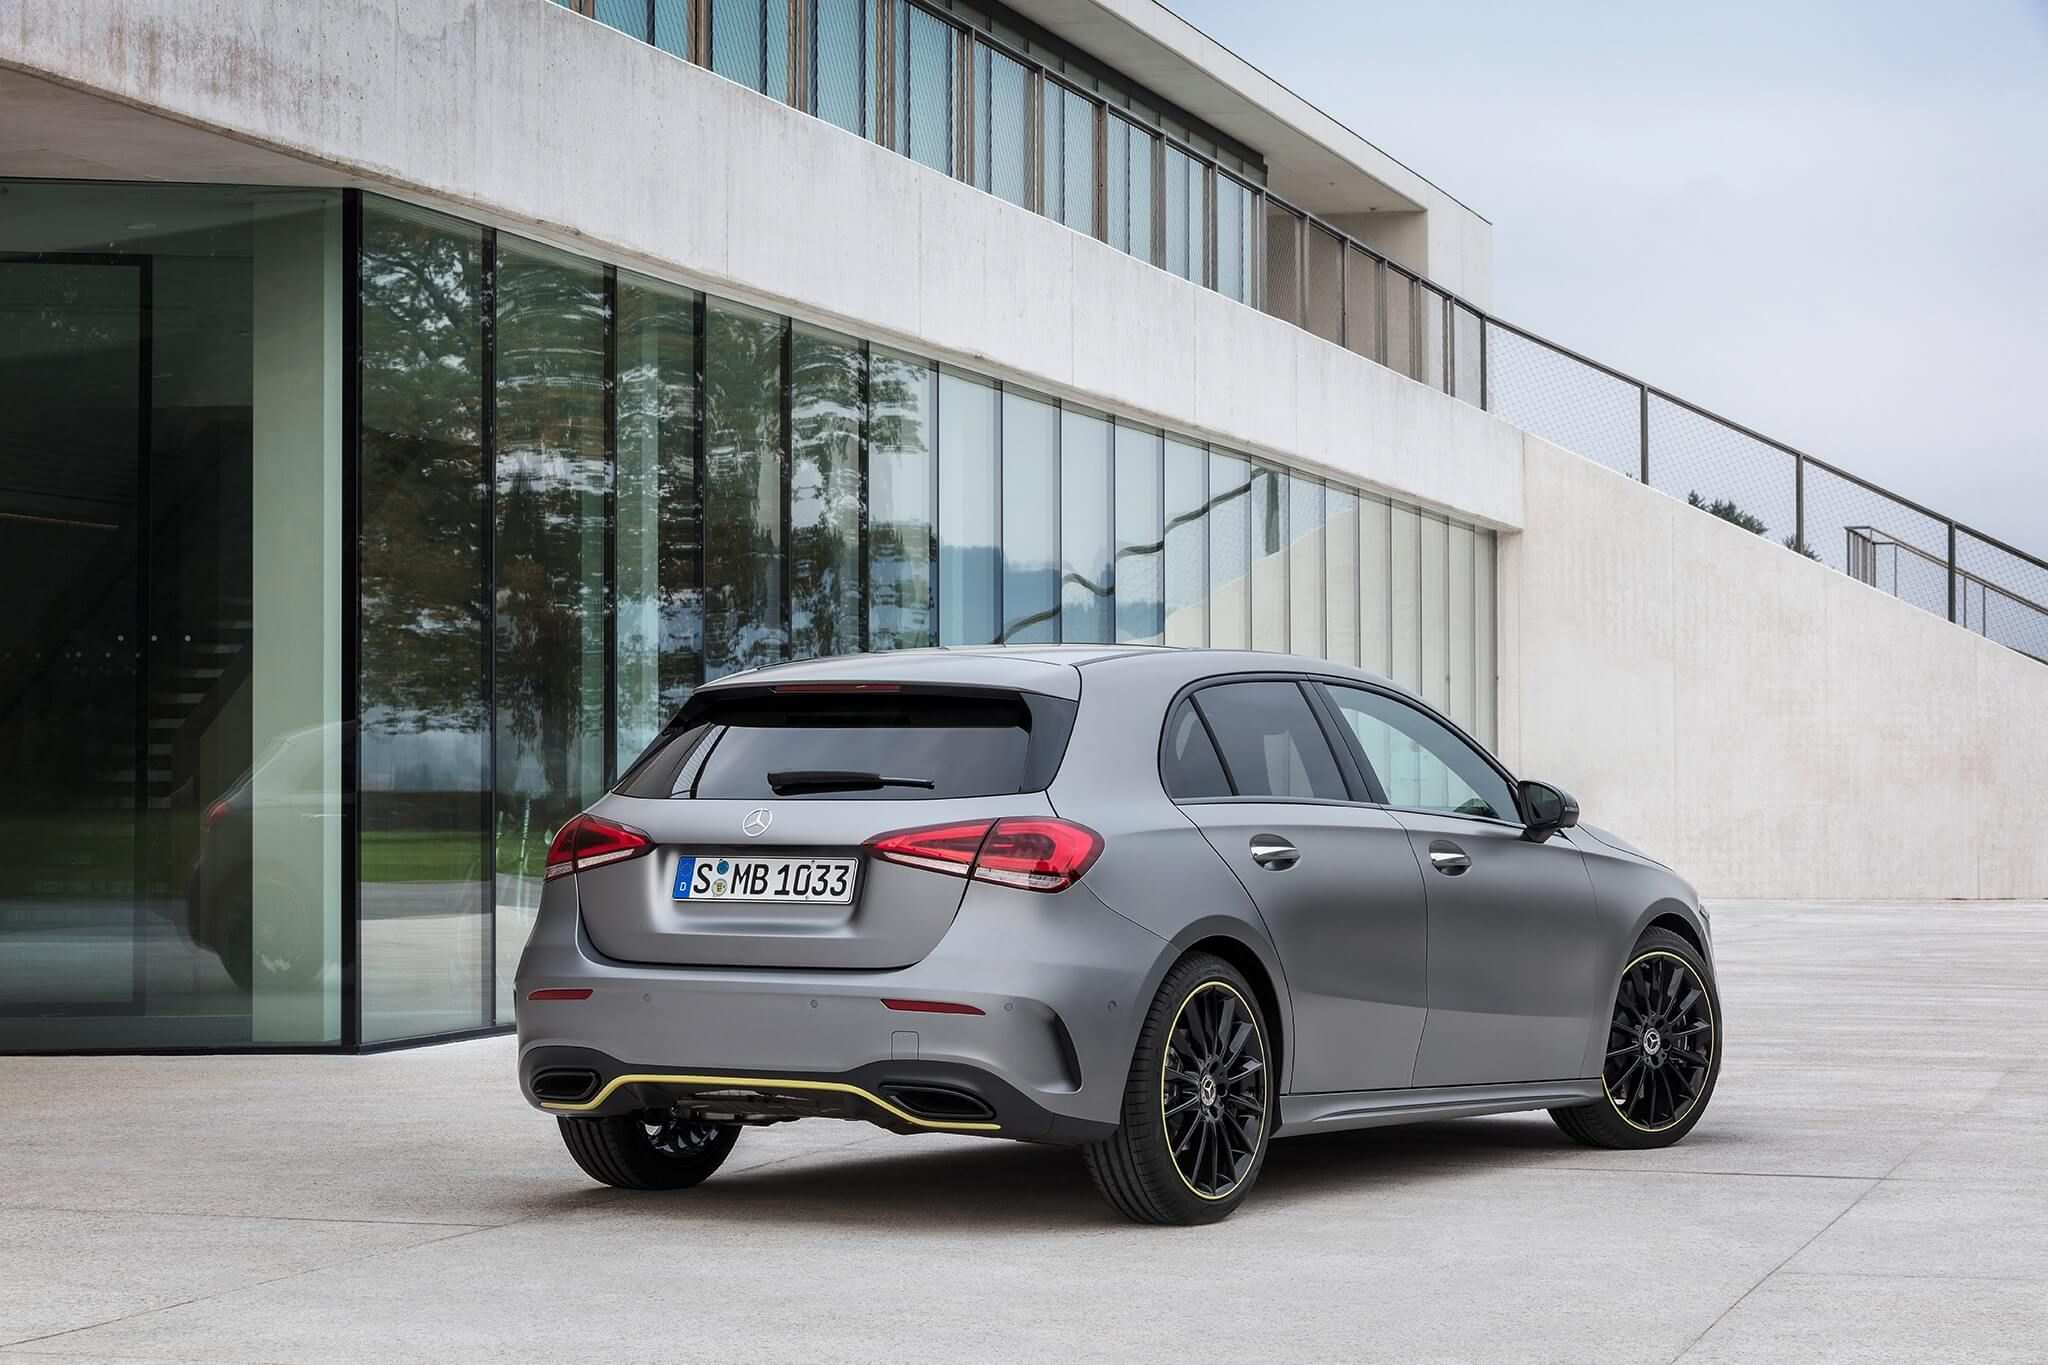 88 All New 2020 Mercedes Hatchback Prices with 2020 Mercedes Hatchback